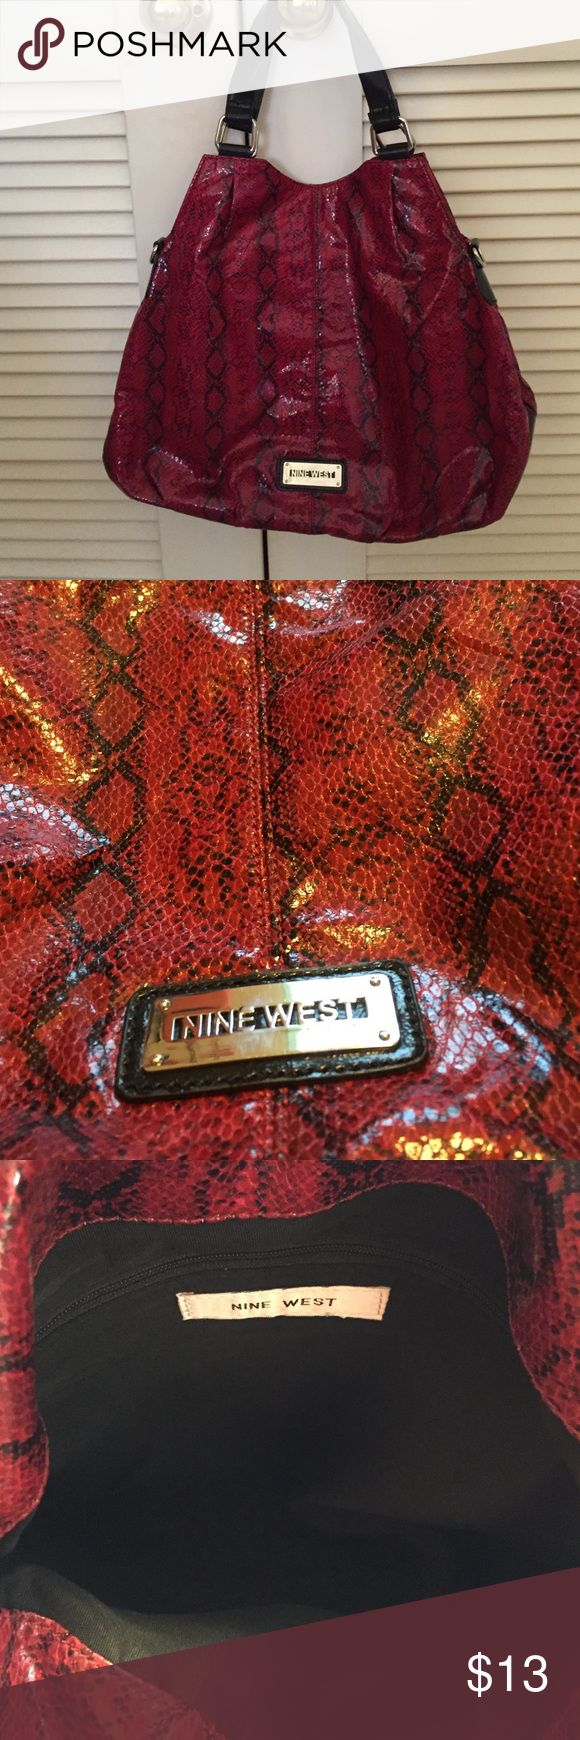 Nine West Purse Red and black printed Nine West purse. Still in good condition with no marks or stains. Nine West Bags Hobos